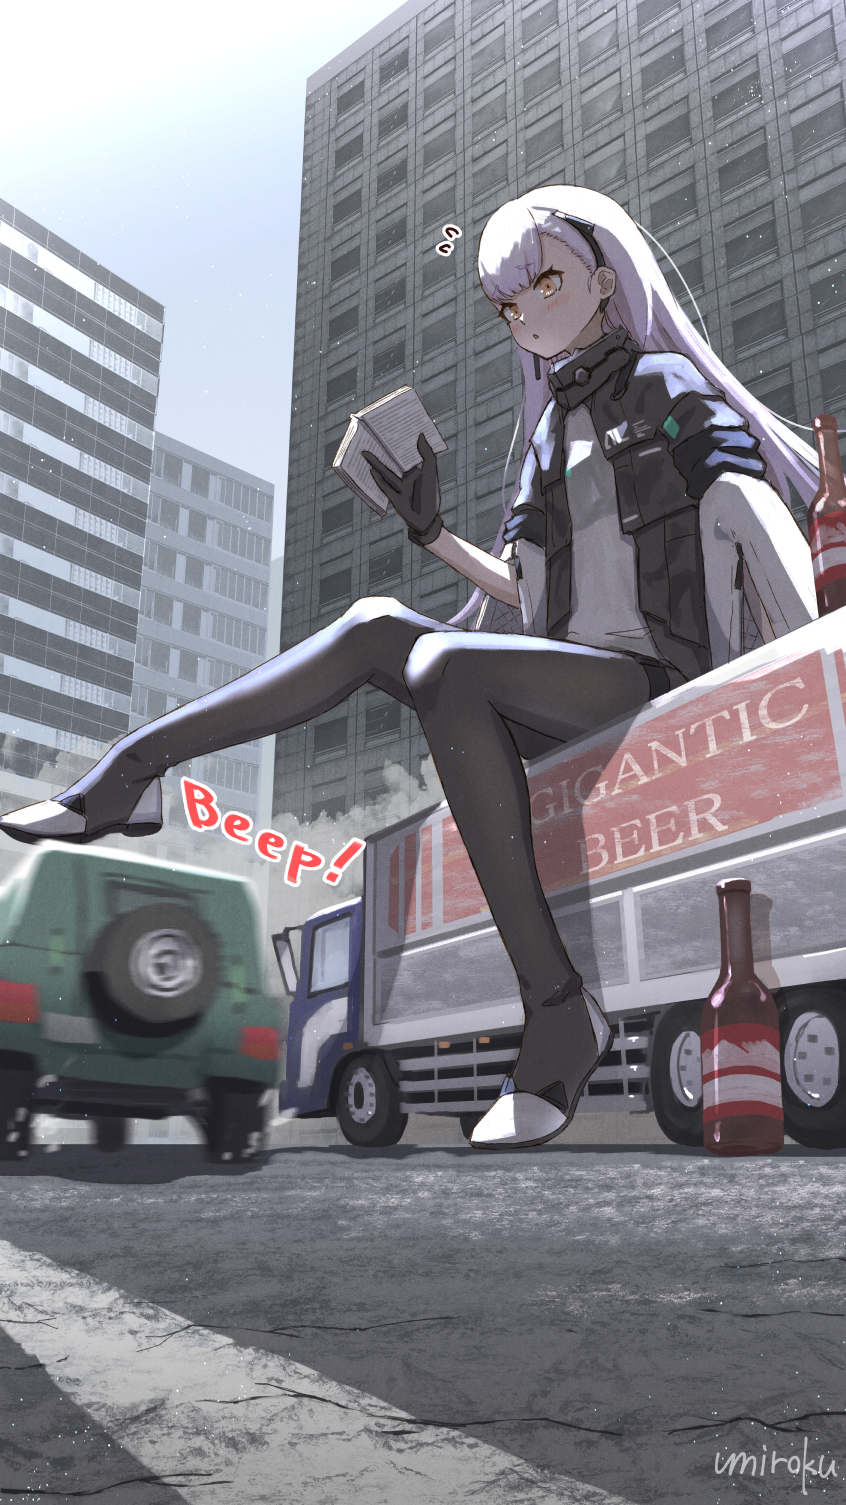 1girl :o ak-alfa_(girls_frontline) bangs beer_bottle black_footwear black_gloves black_jacket black_legwear blush book boots brown_eyes building car commentary_request day eyebrows_visible_through_hair flying_sweatdrops giant giantess girls_frontline gloves ground_vehicle highres holding holding_book jacket long_hair long_sleeves motor_vehicle open_book outdoors parted_lips purple_hair shirt short_over_long_sleeves short_sleeves sitting solo thigh-highs thigh_boots truck umiroku very_long_hair white_shirt wide_sleeves